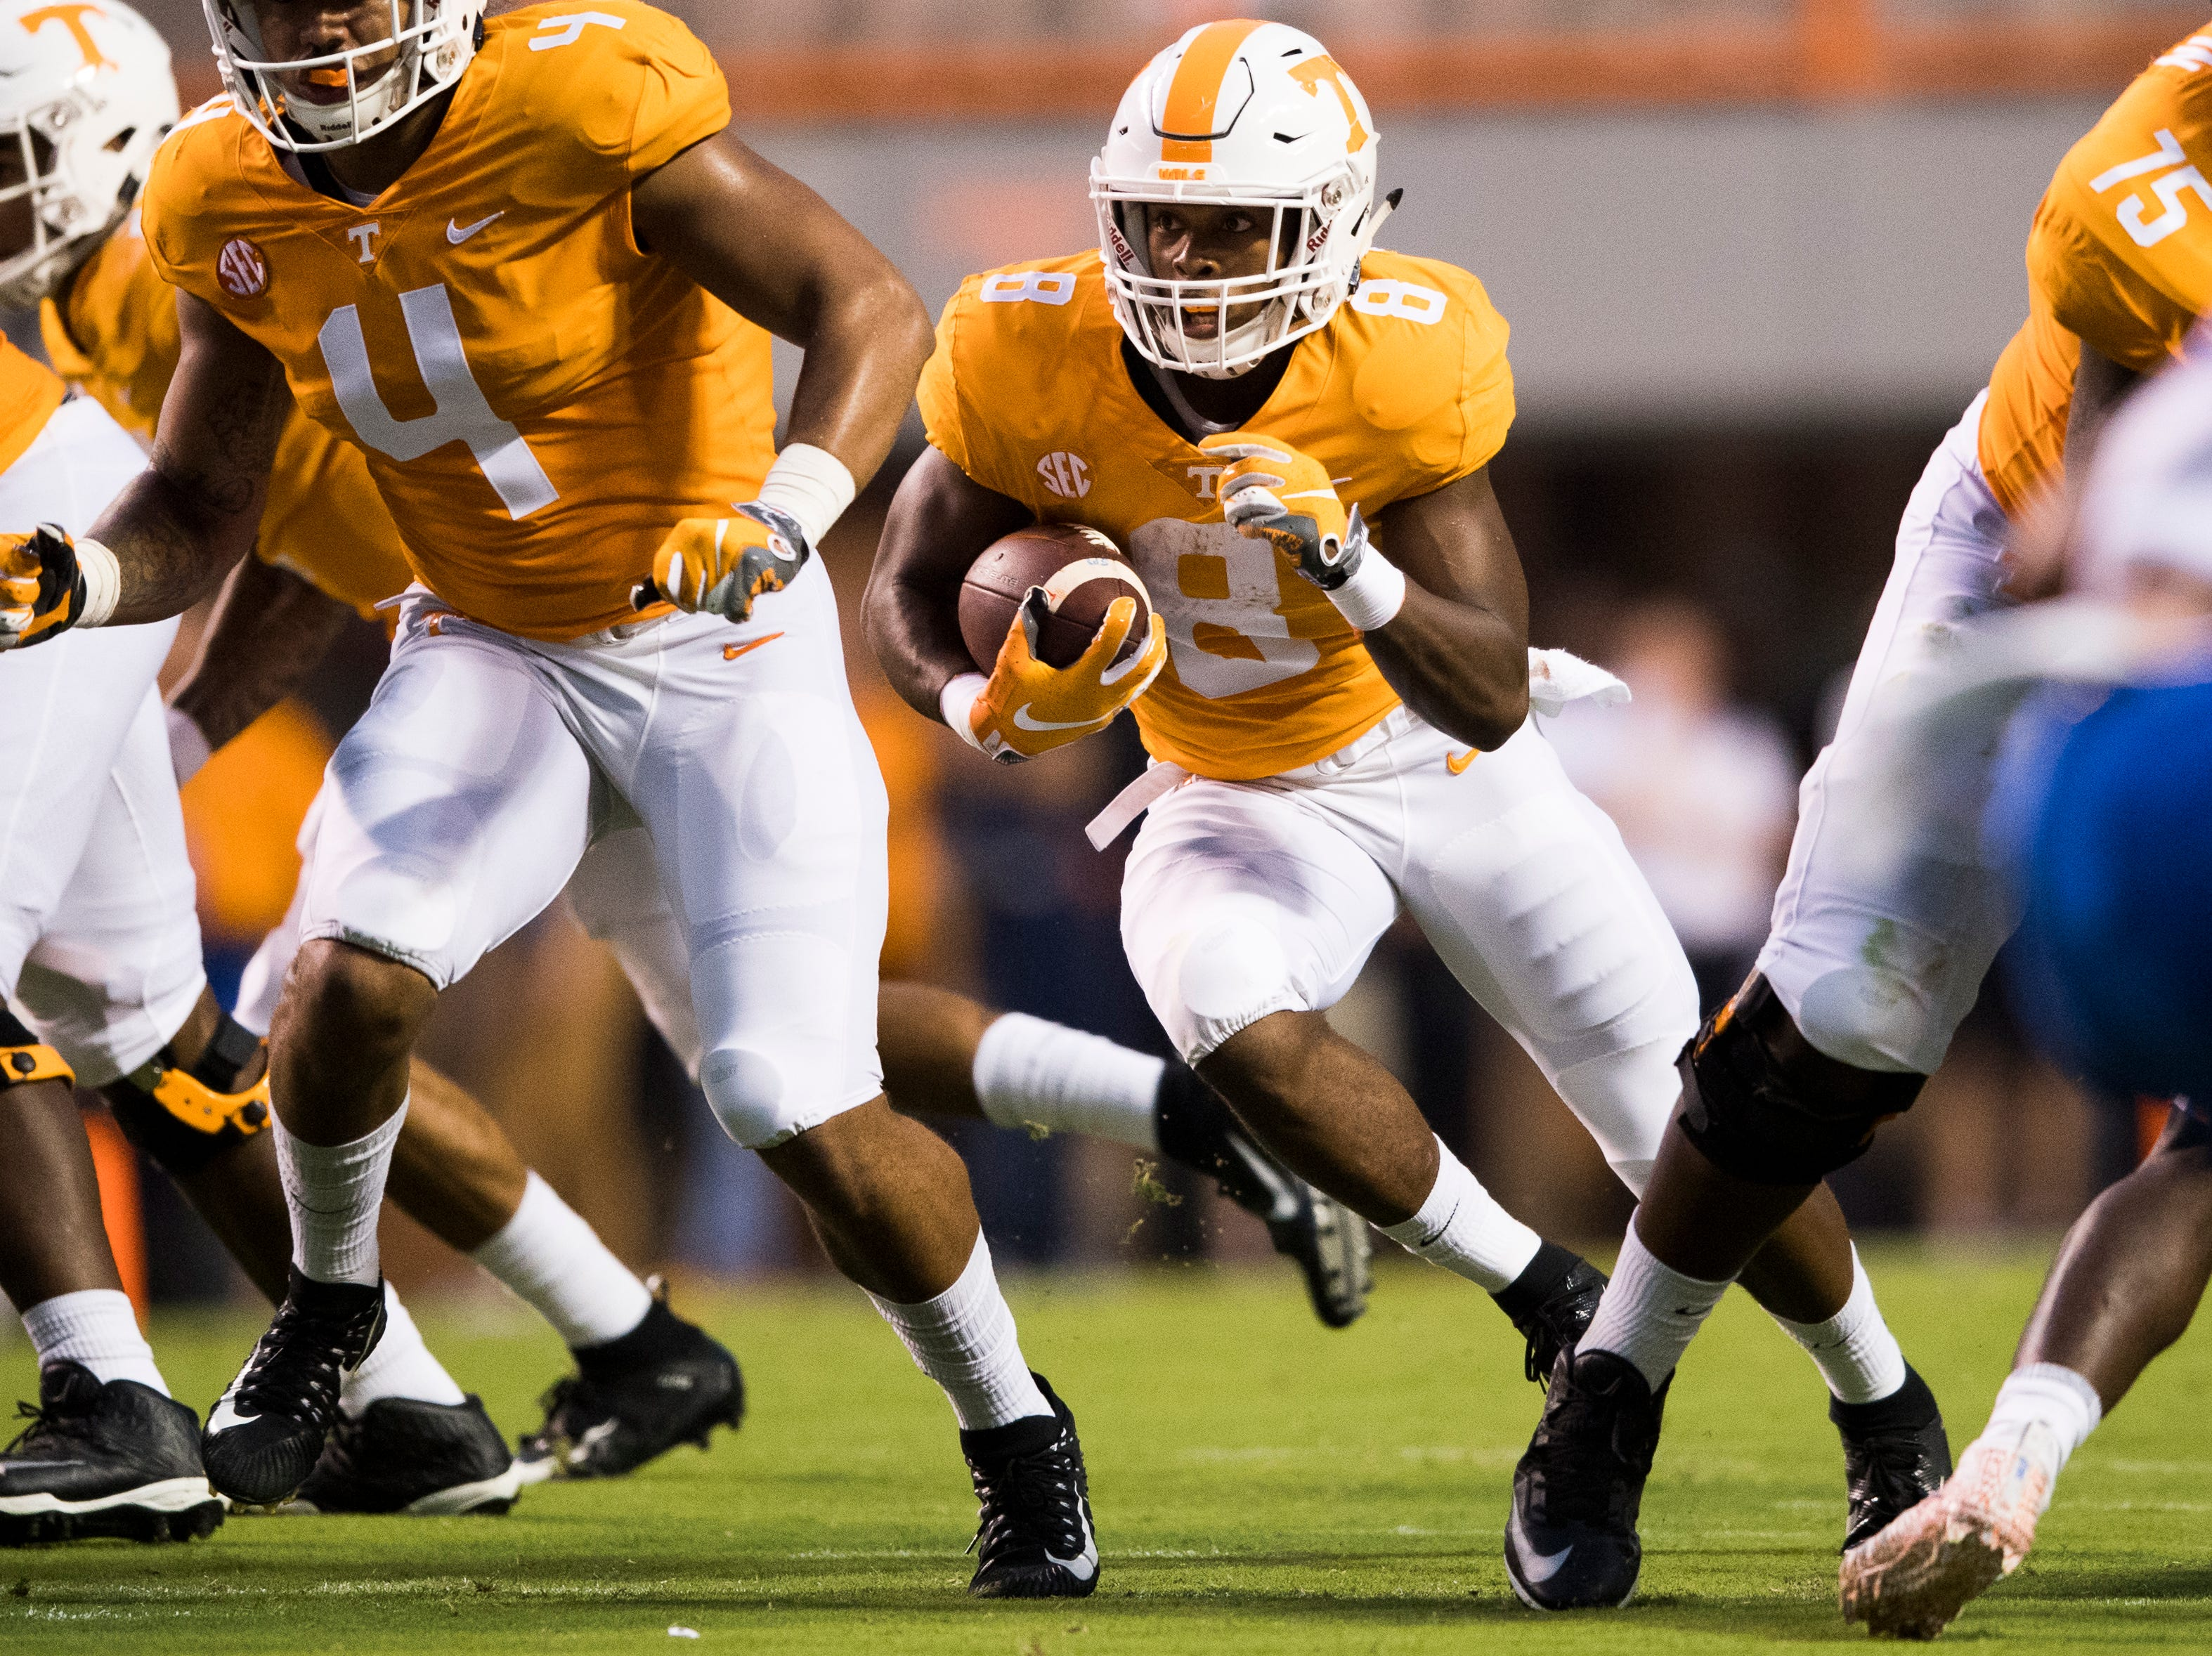 Tennessee running back Ty Chandler (8) runs with the ball during a game between Tennessee and Florida at Neyland Stadium in Knoxville, Tennessee on Saturday, September 22, 2018.